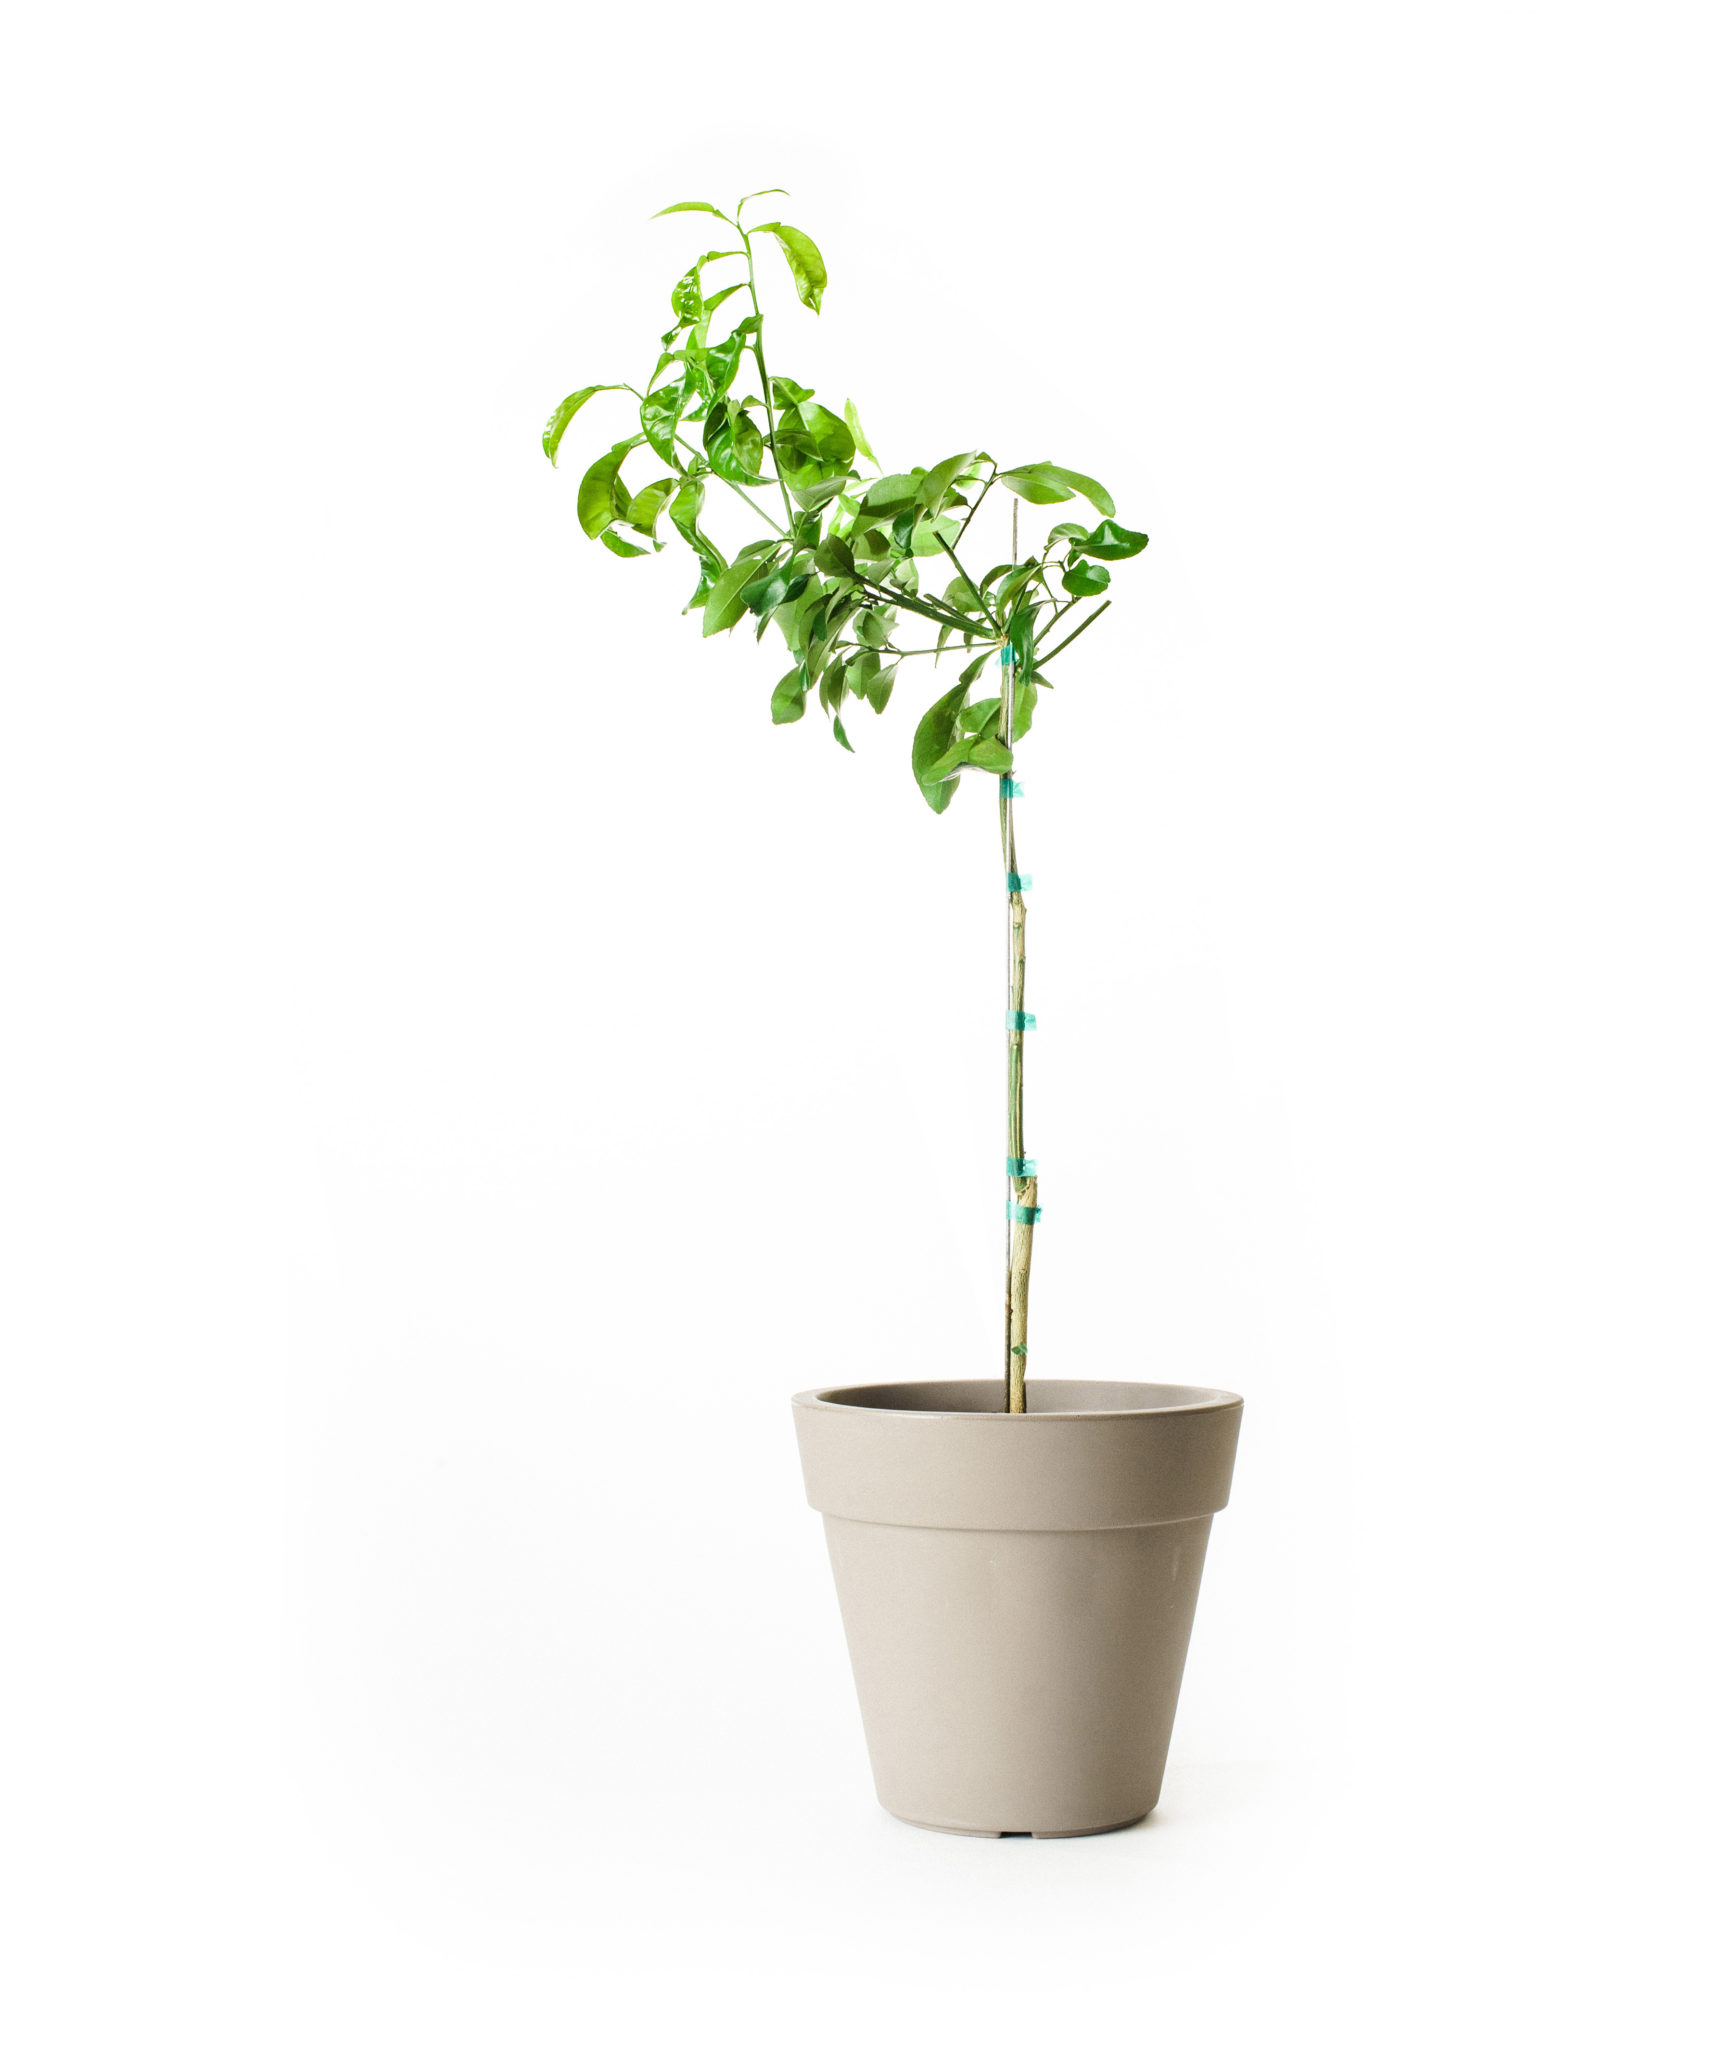 Ruby Red Grapefruit Tree (Age: 1 Year, Height: 18 - 26 IN)